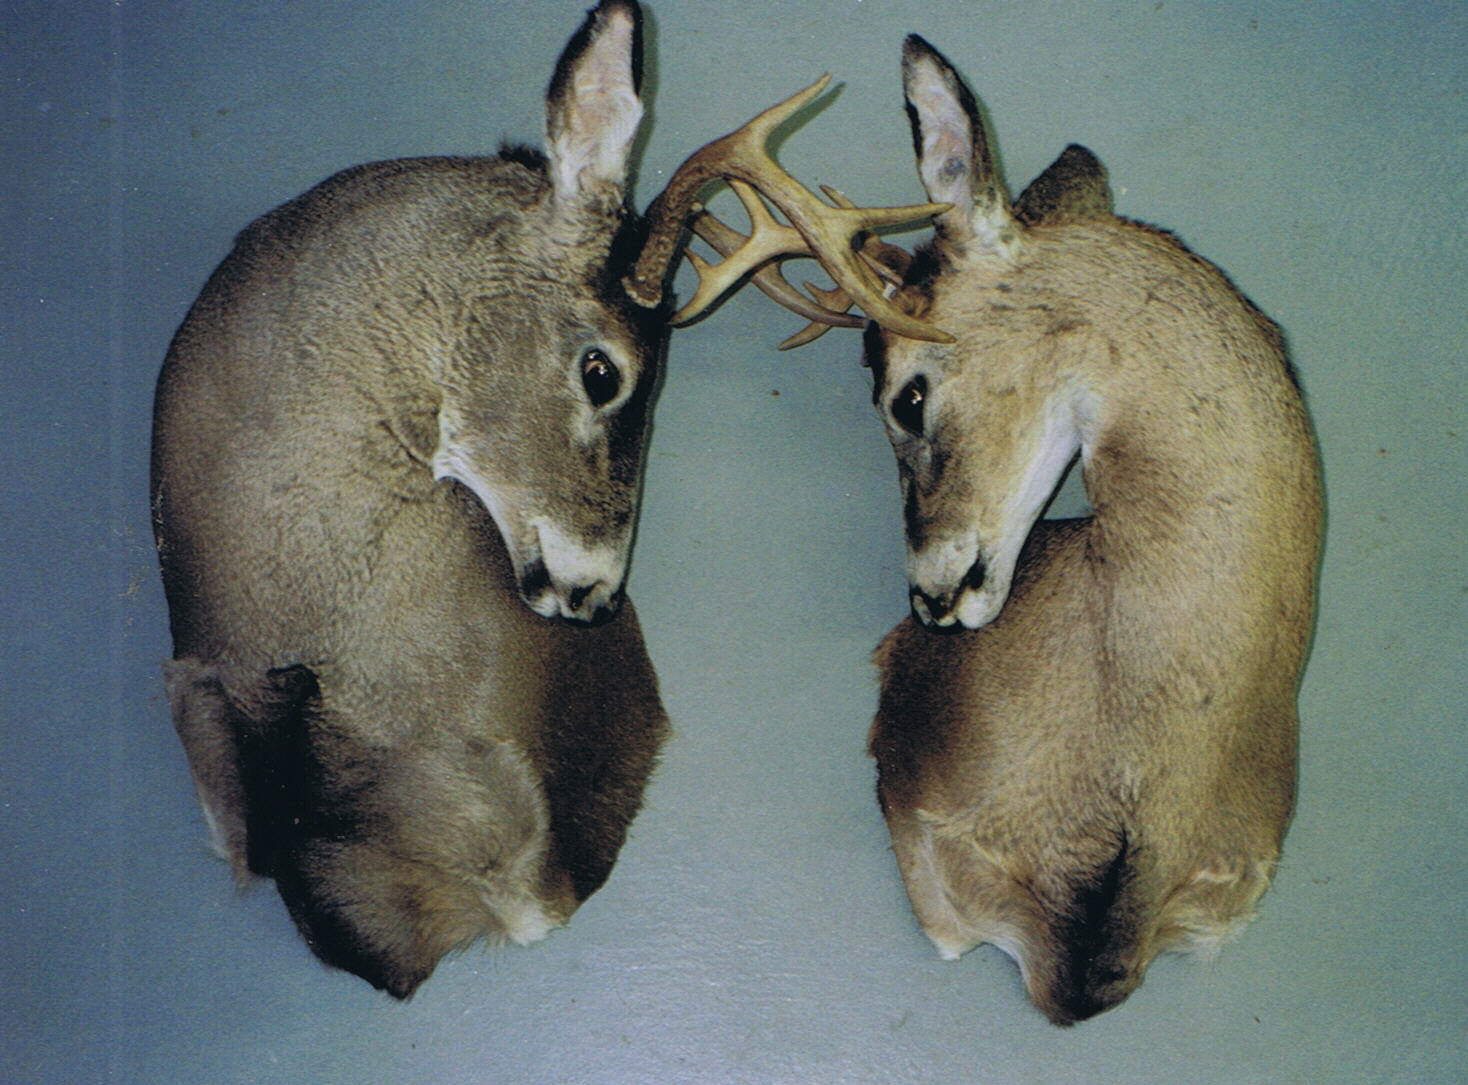 Two whitetail deer sparing